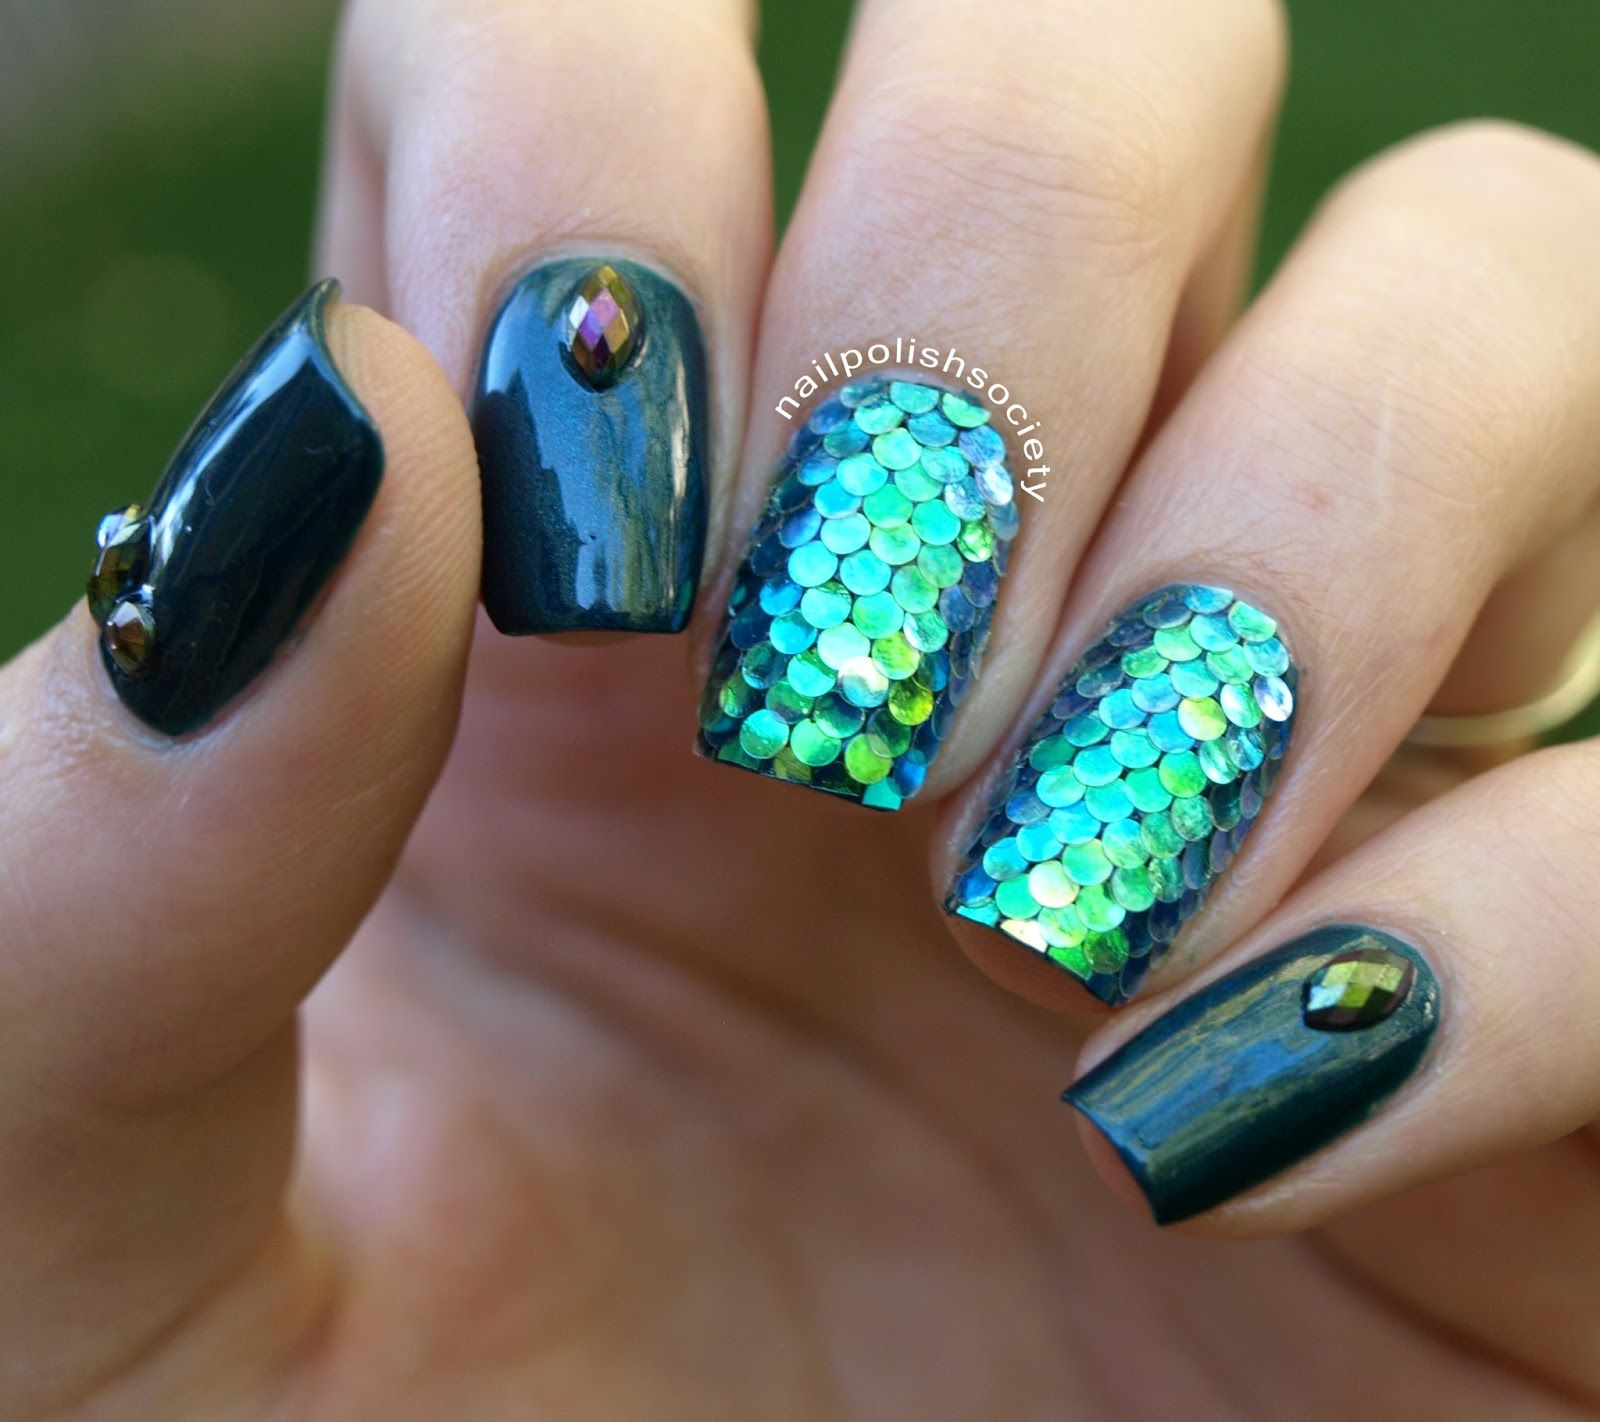 Nail Polish Society 31dc2017 Day 17 Mermaid Scales Glitter Placement